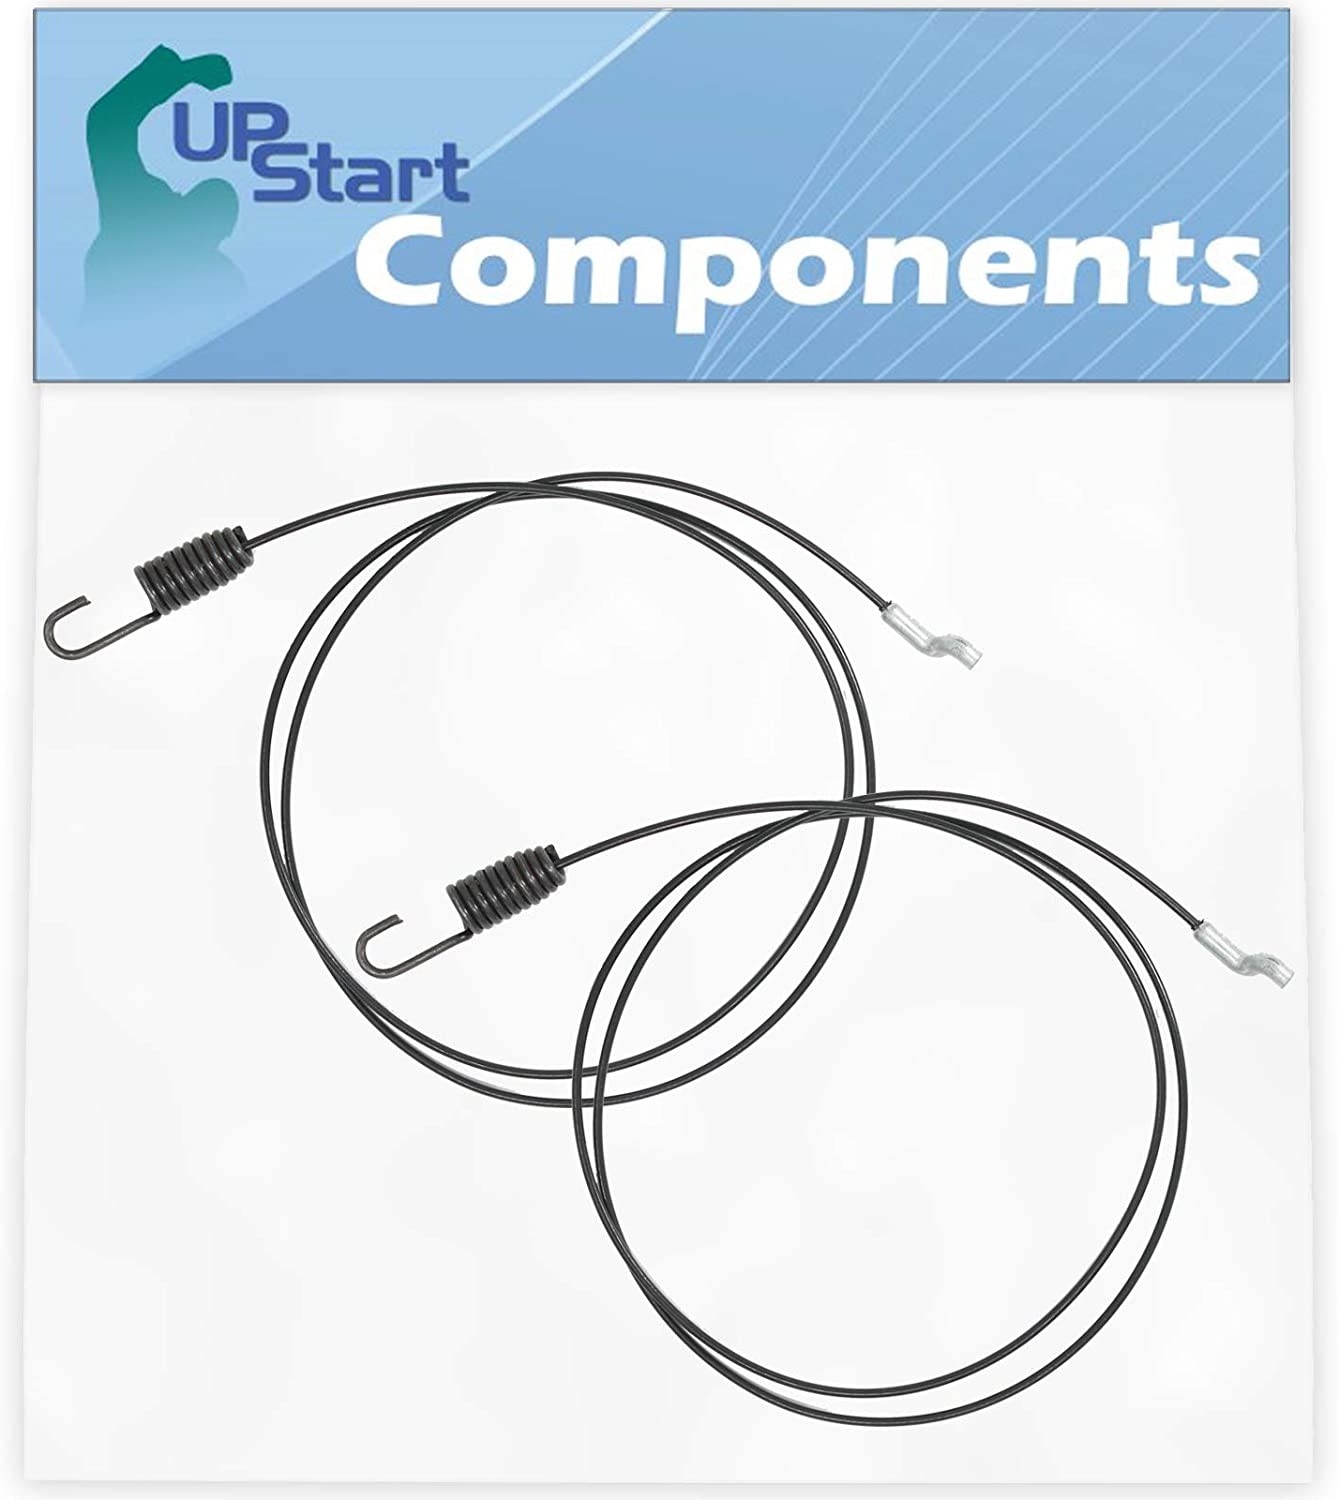 UpStart Components 2-Pack 946-04229B Clutch Cable Replacement for MTD 31AH65FH795 - Compatible with 746-04229 Clutch Drive Cable